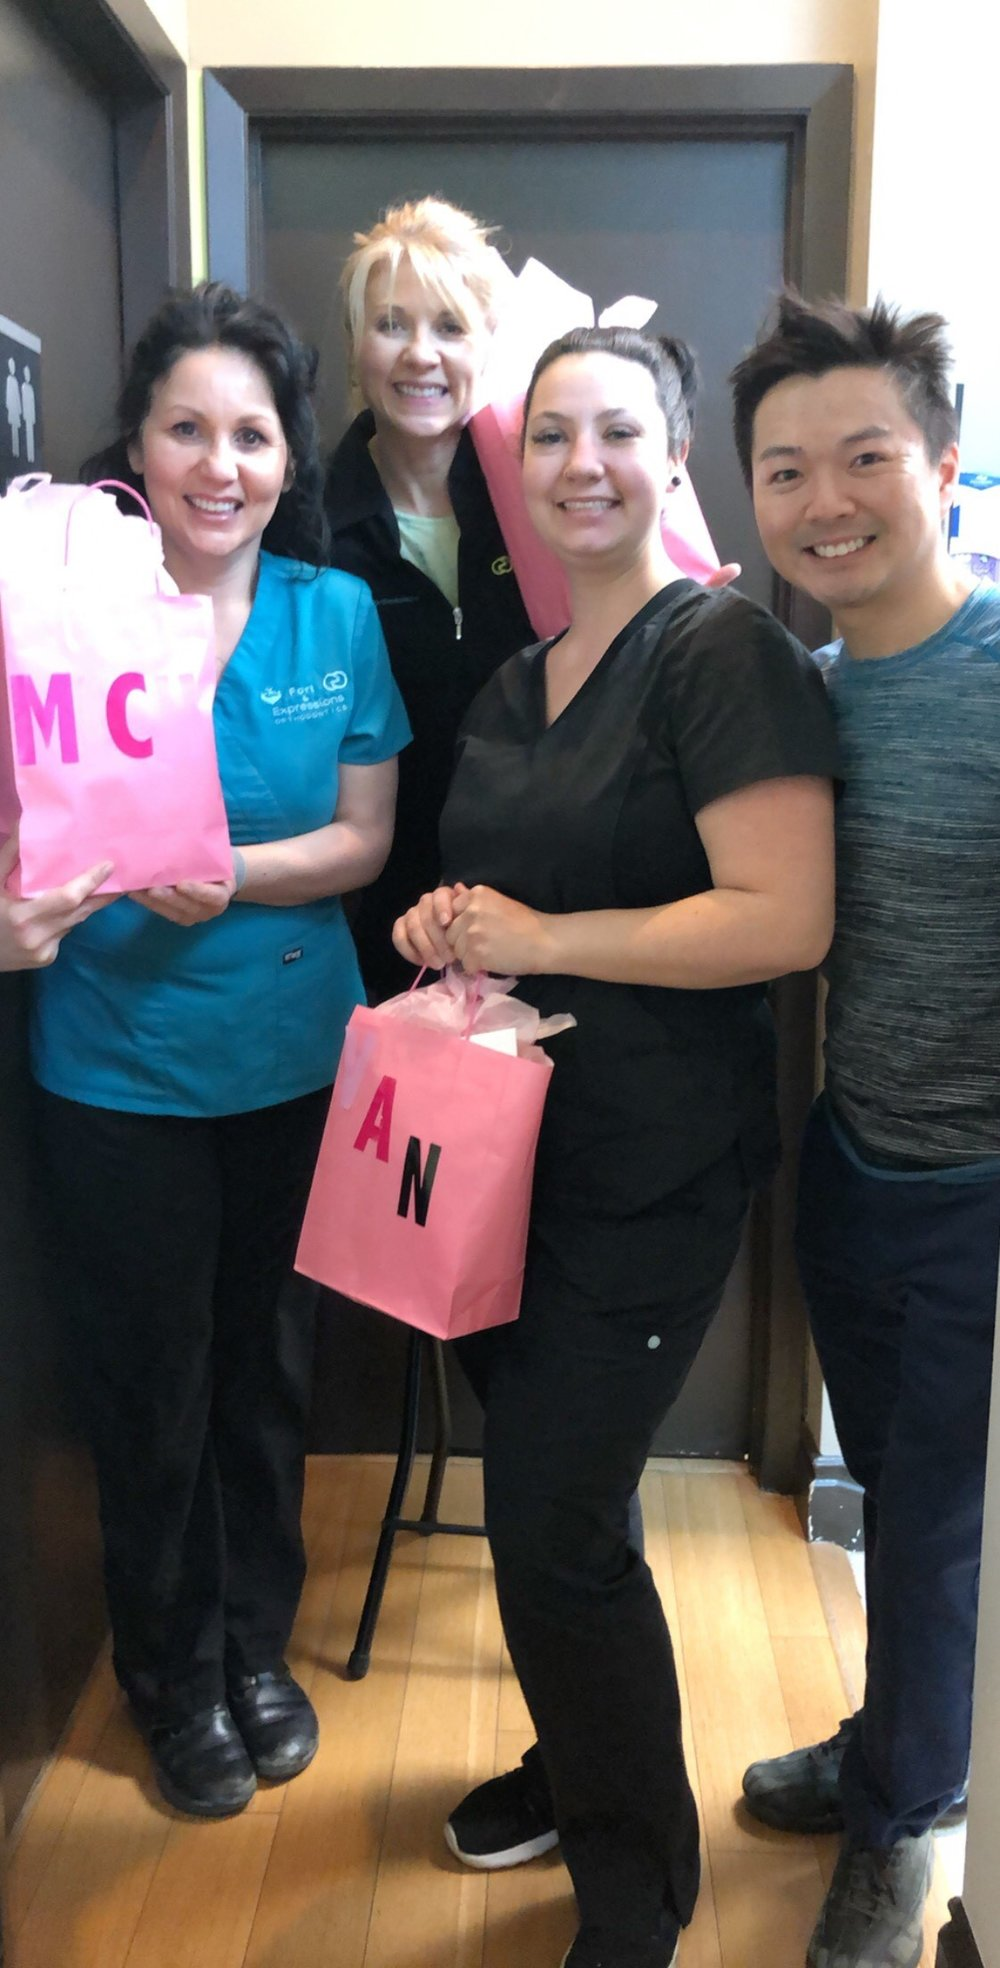 Left to right - Michelle, Jo, and Vanessa. Three ladies who love orthodontics and our patients in Fort Saskatchewan!